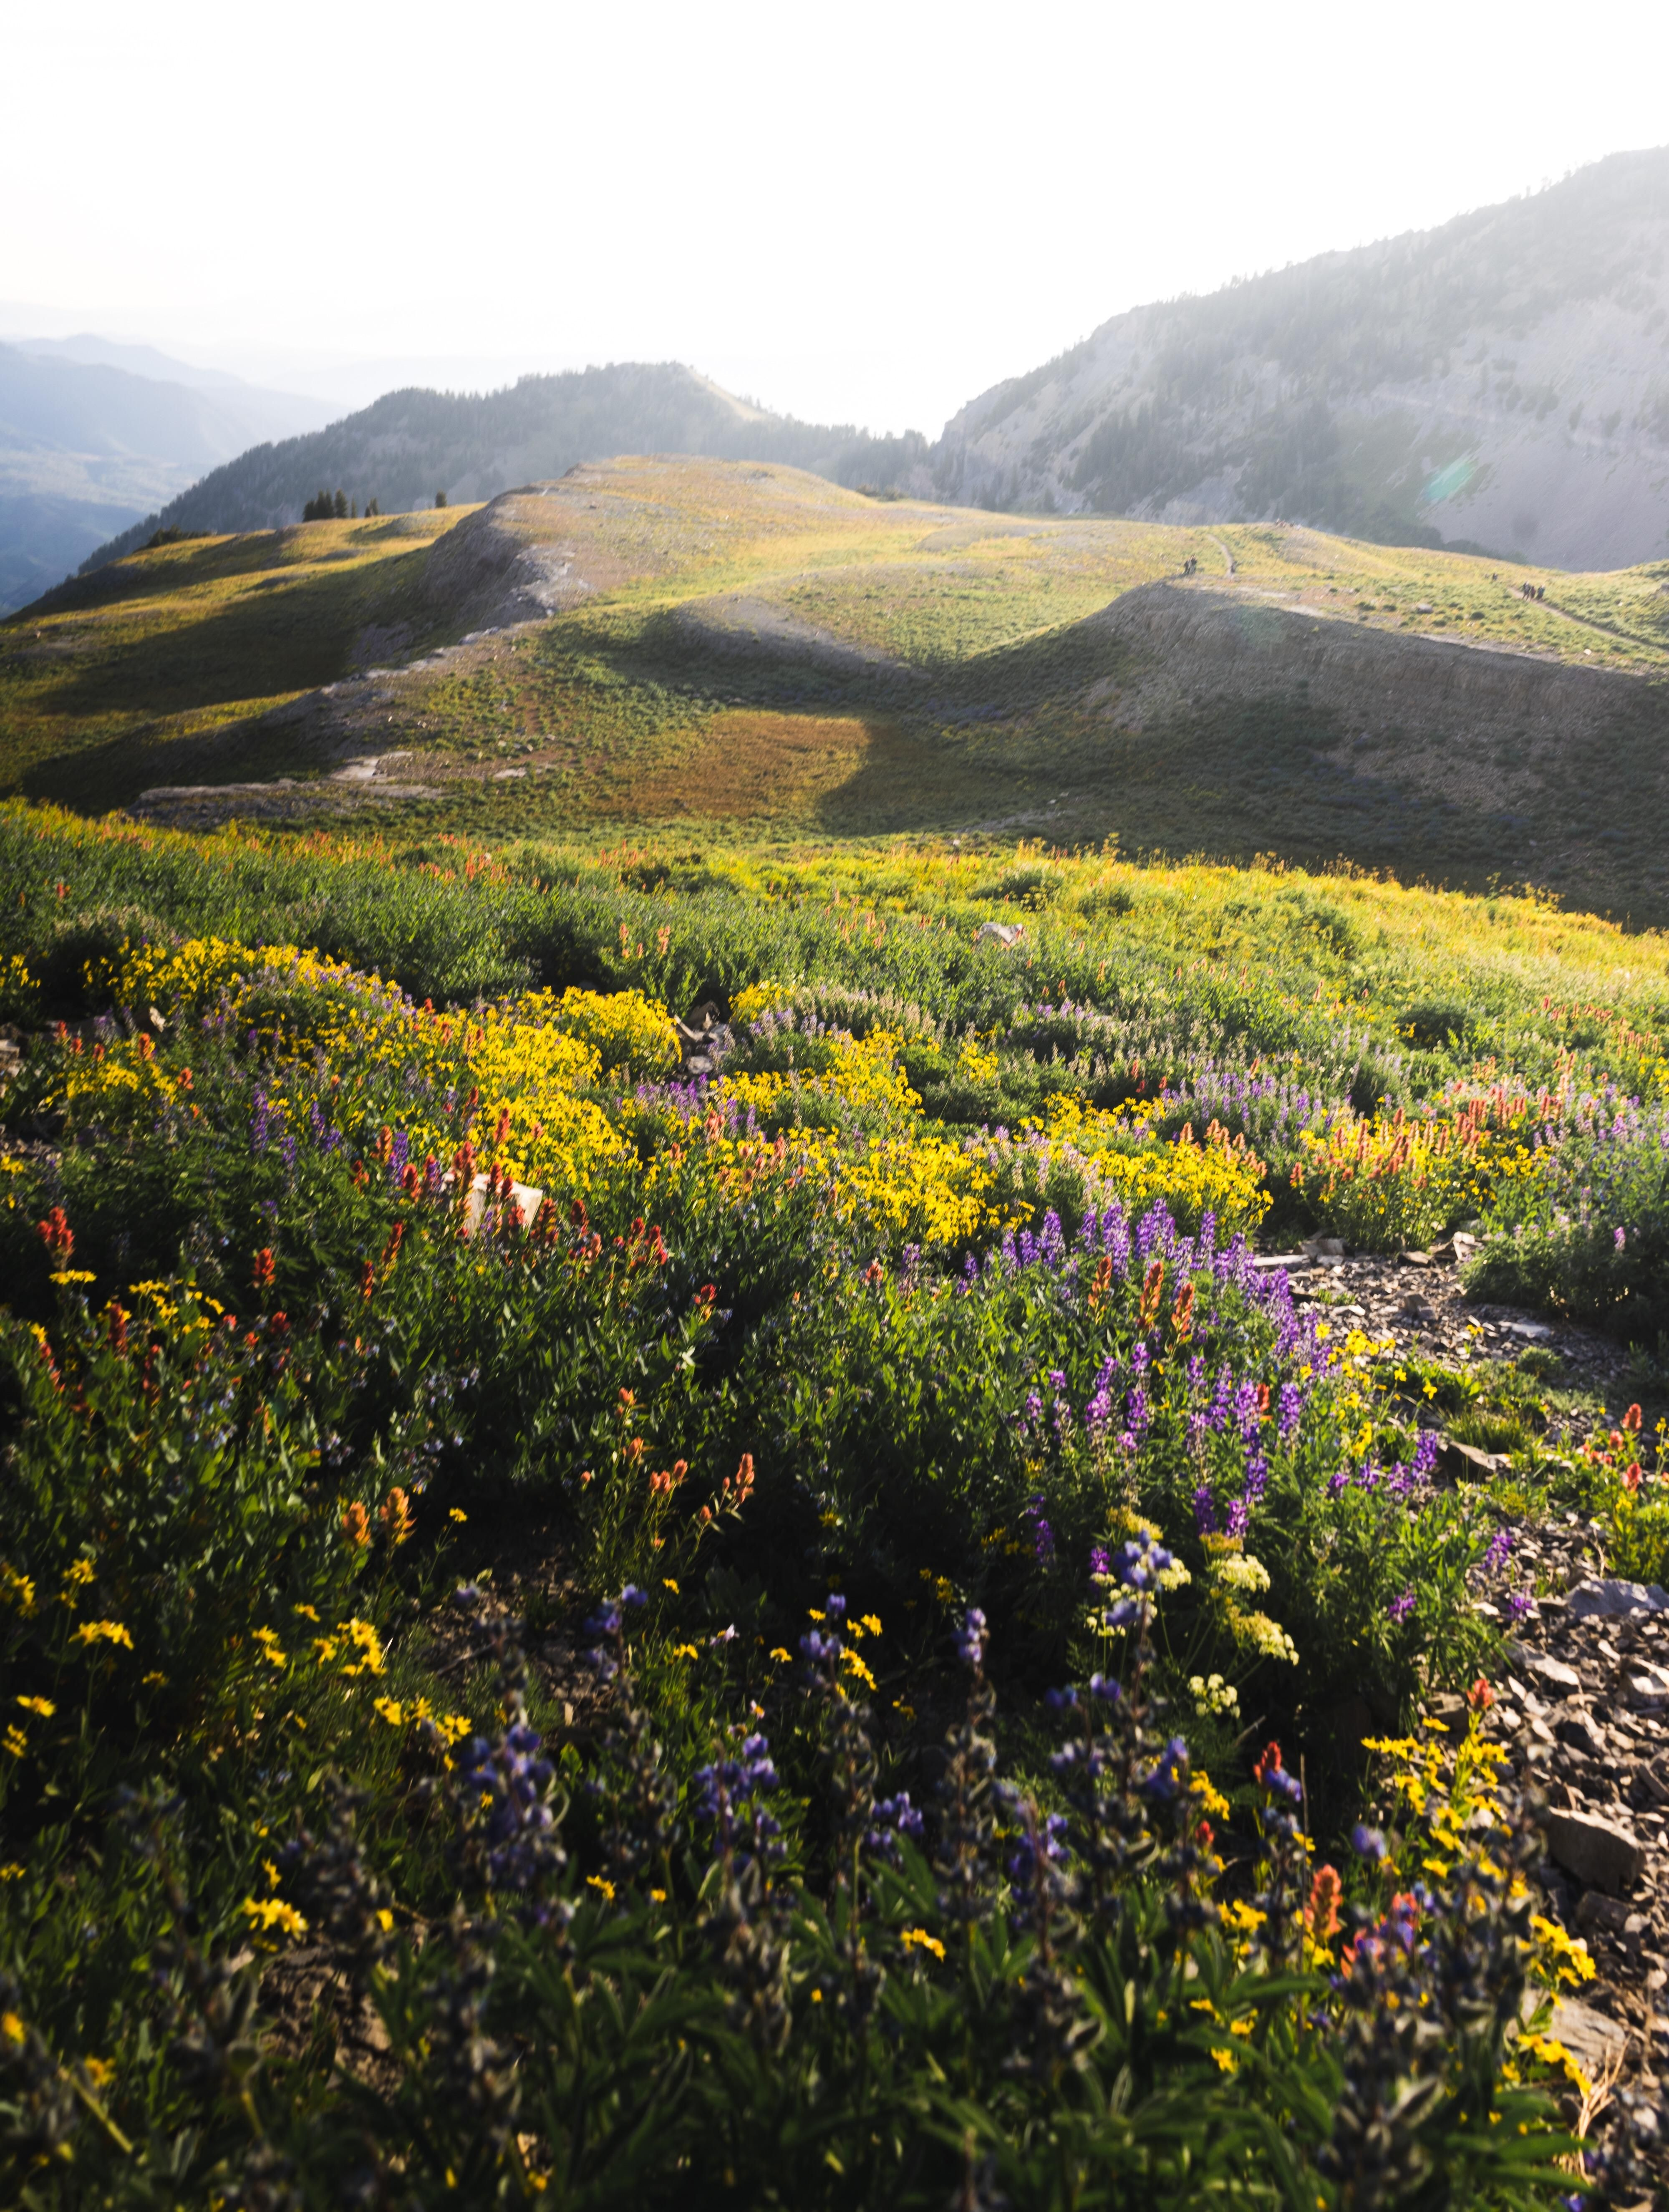 A patch of wildflowers still thriving up at high altitude